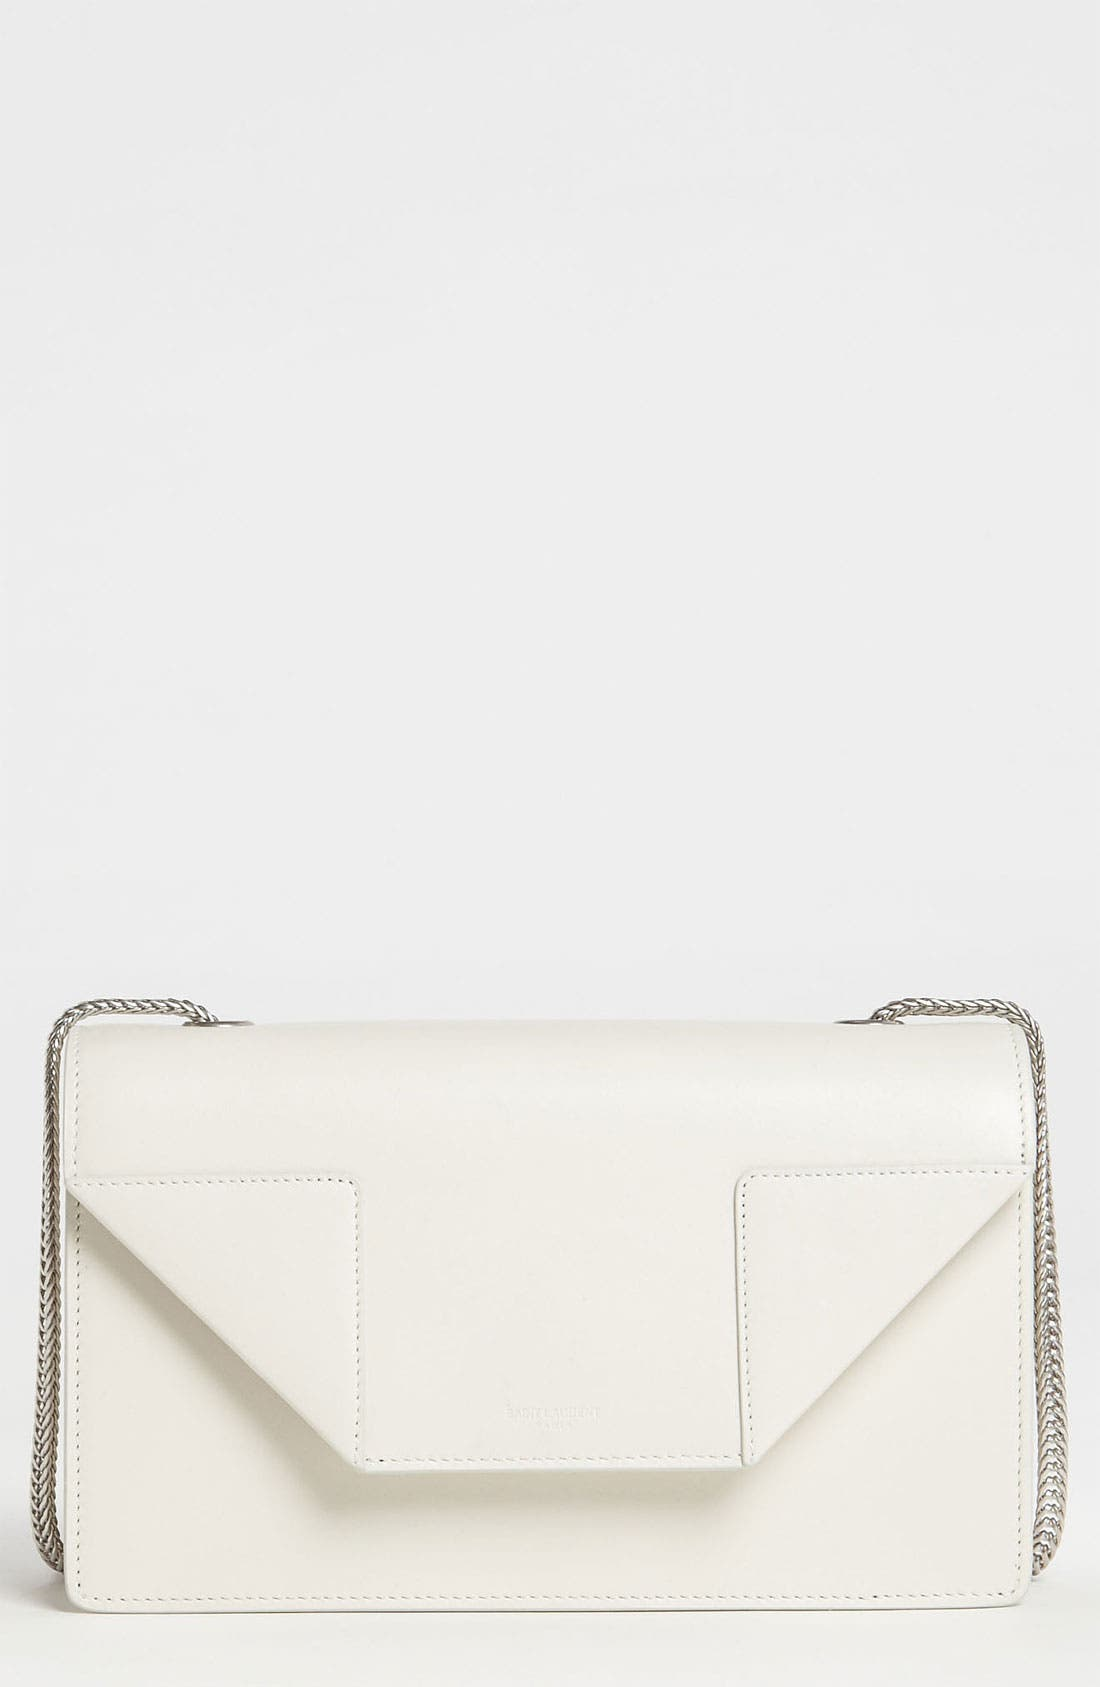 Main Image - Saint Laurent 'Betty - Mini' Shoulder Bag